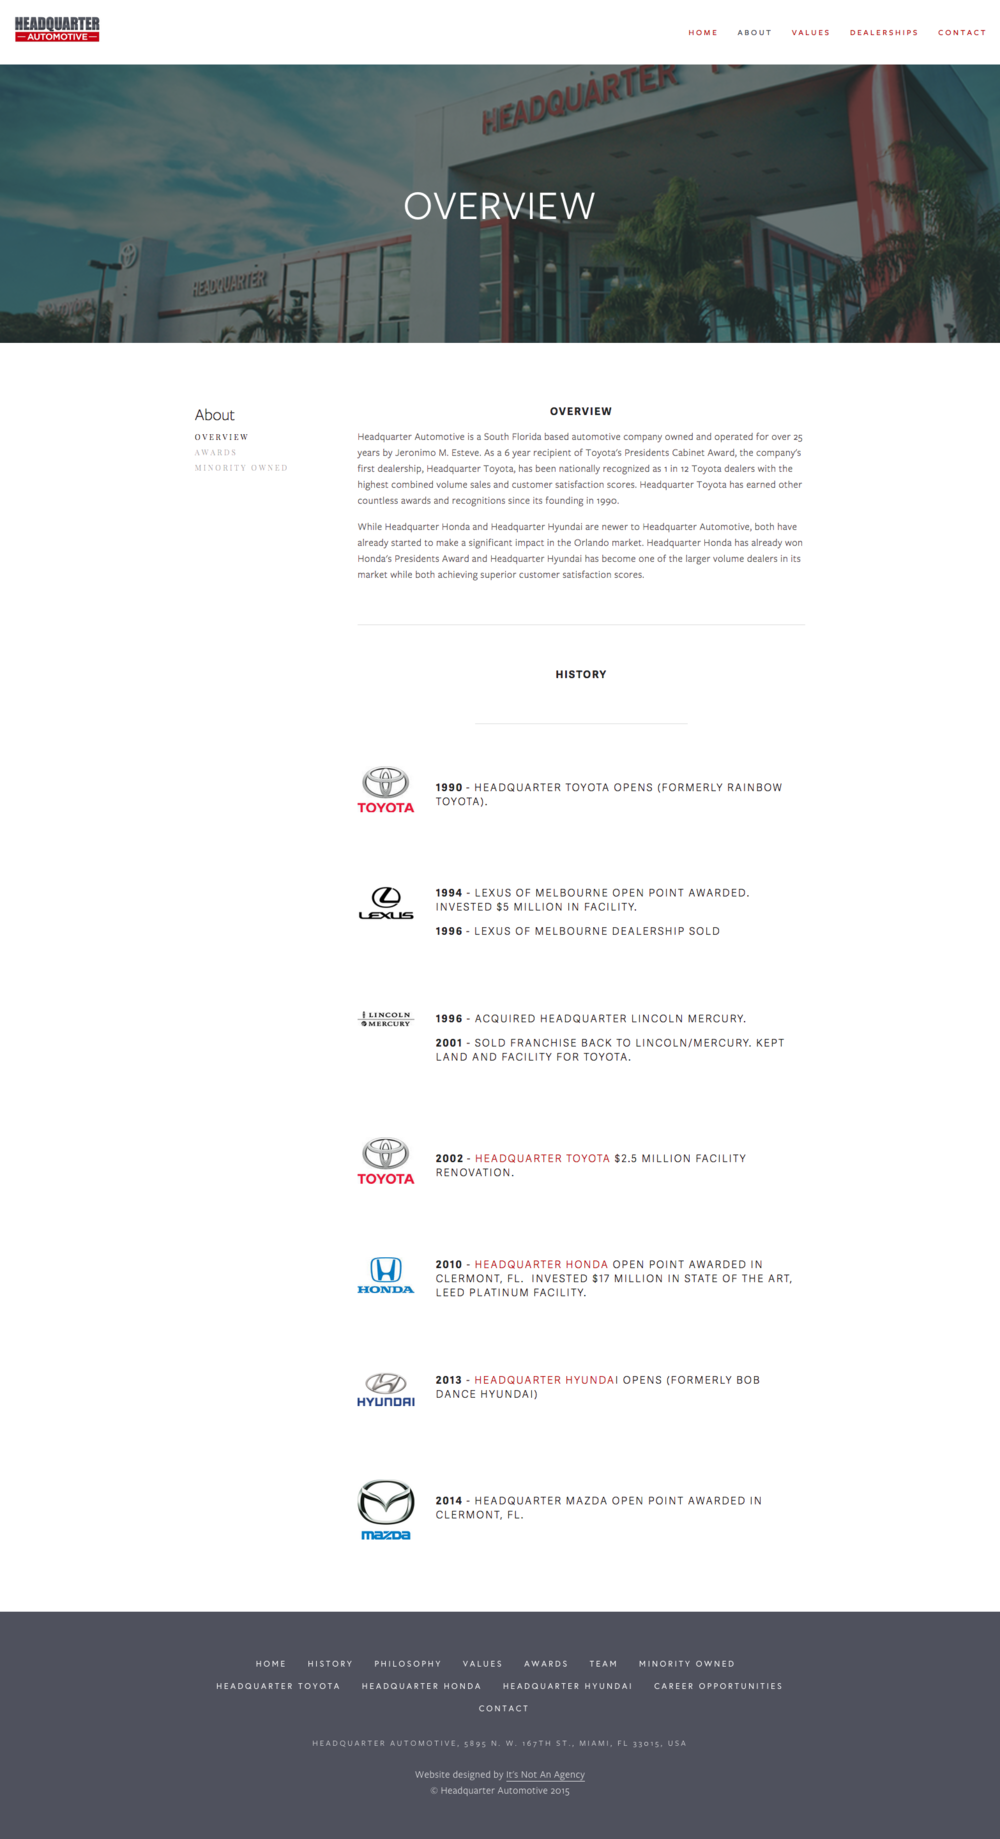 Automotive Website Design_Headquarter Automotive4.png